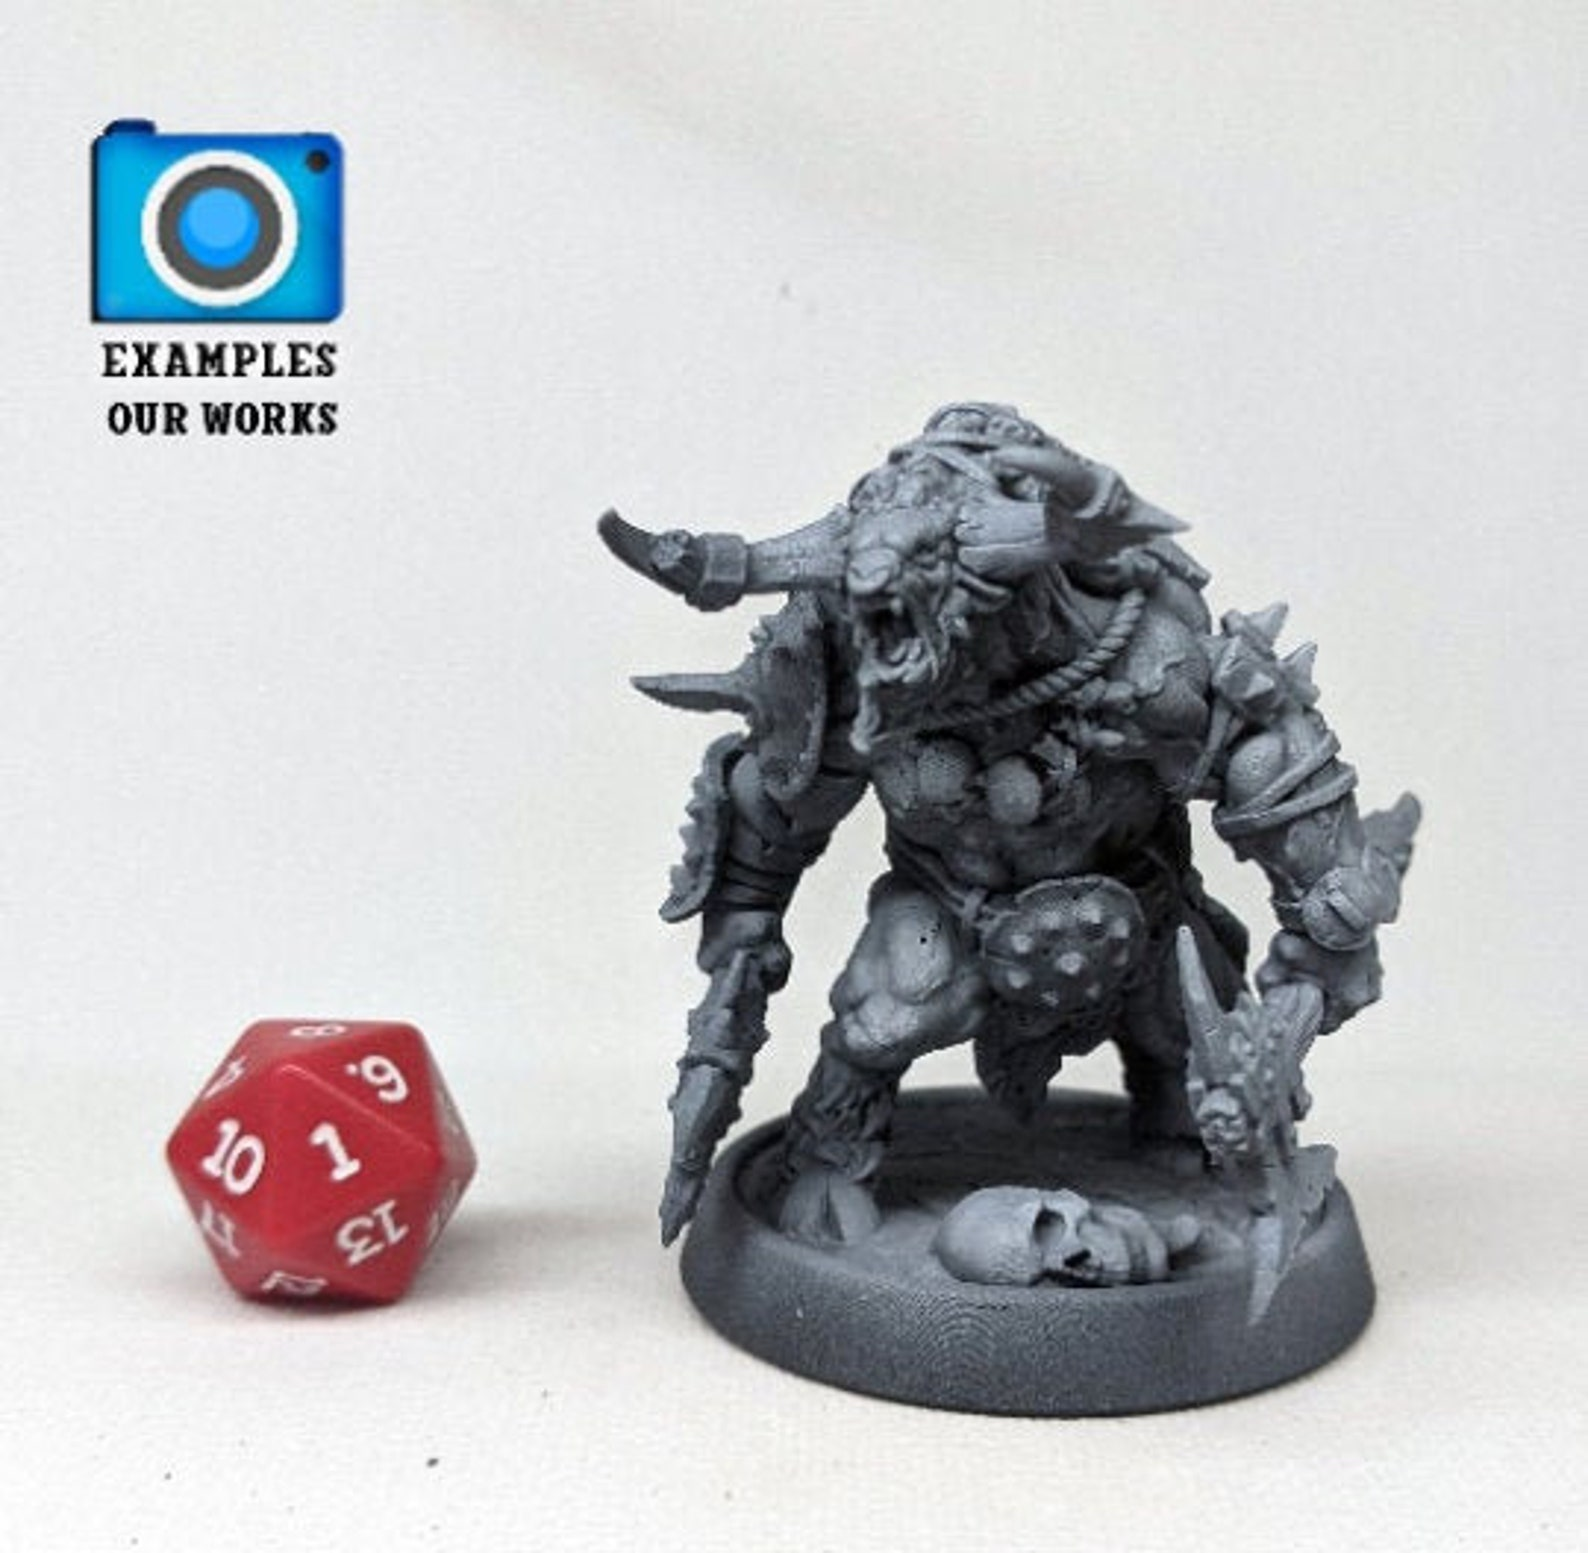 3D Print of NEW - Wyvern - 32mm scale miniature - Large